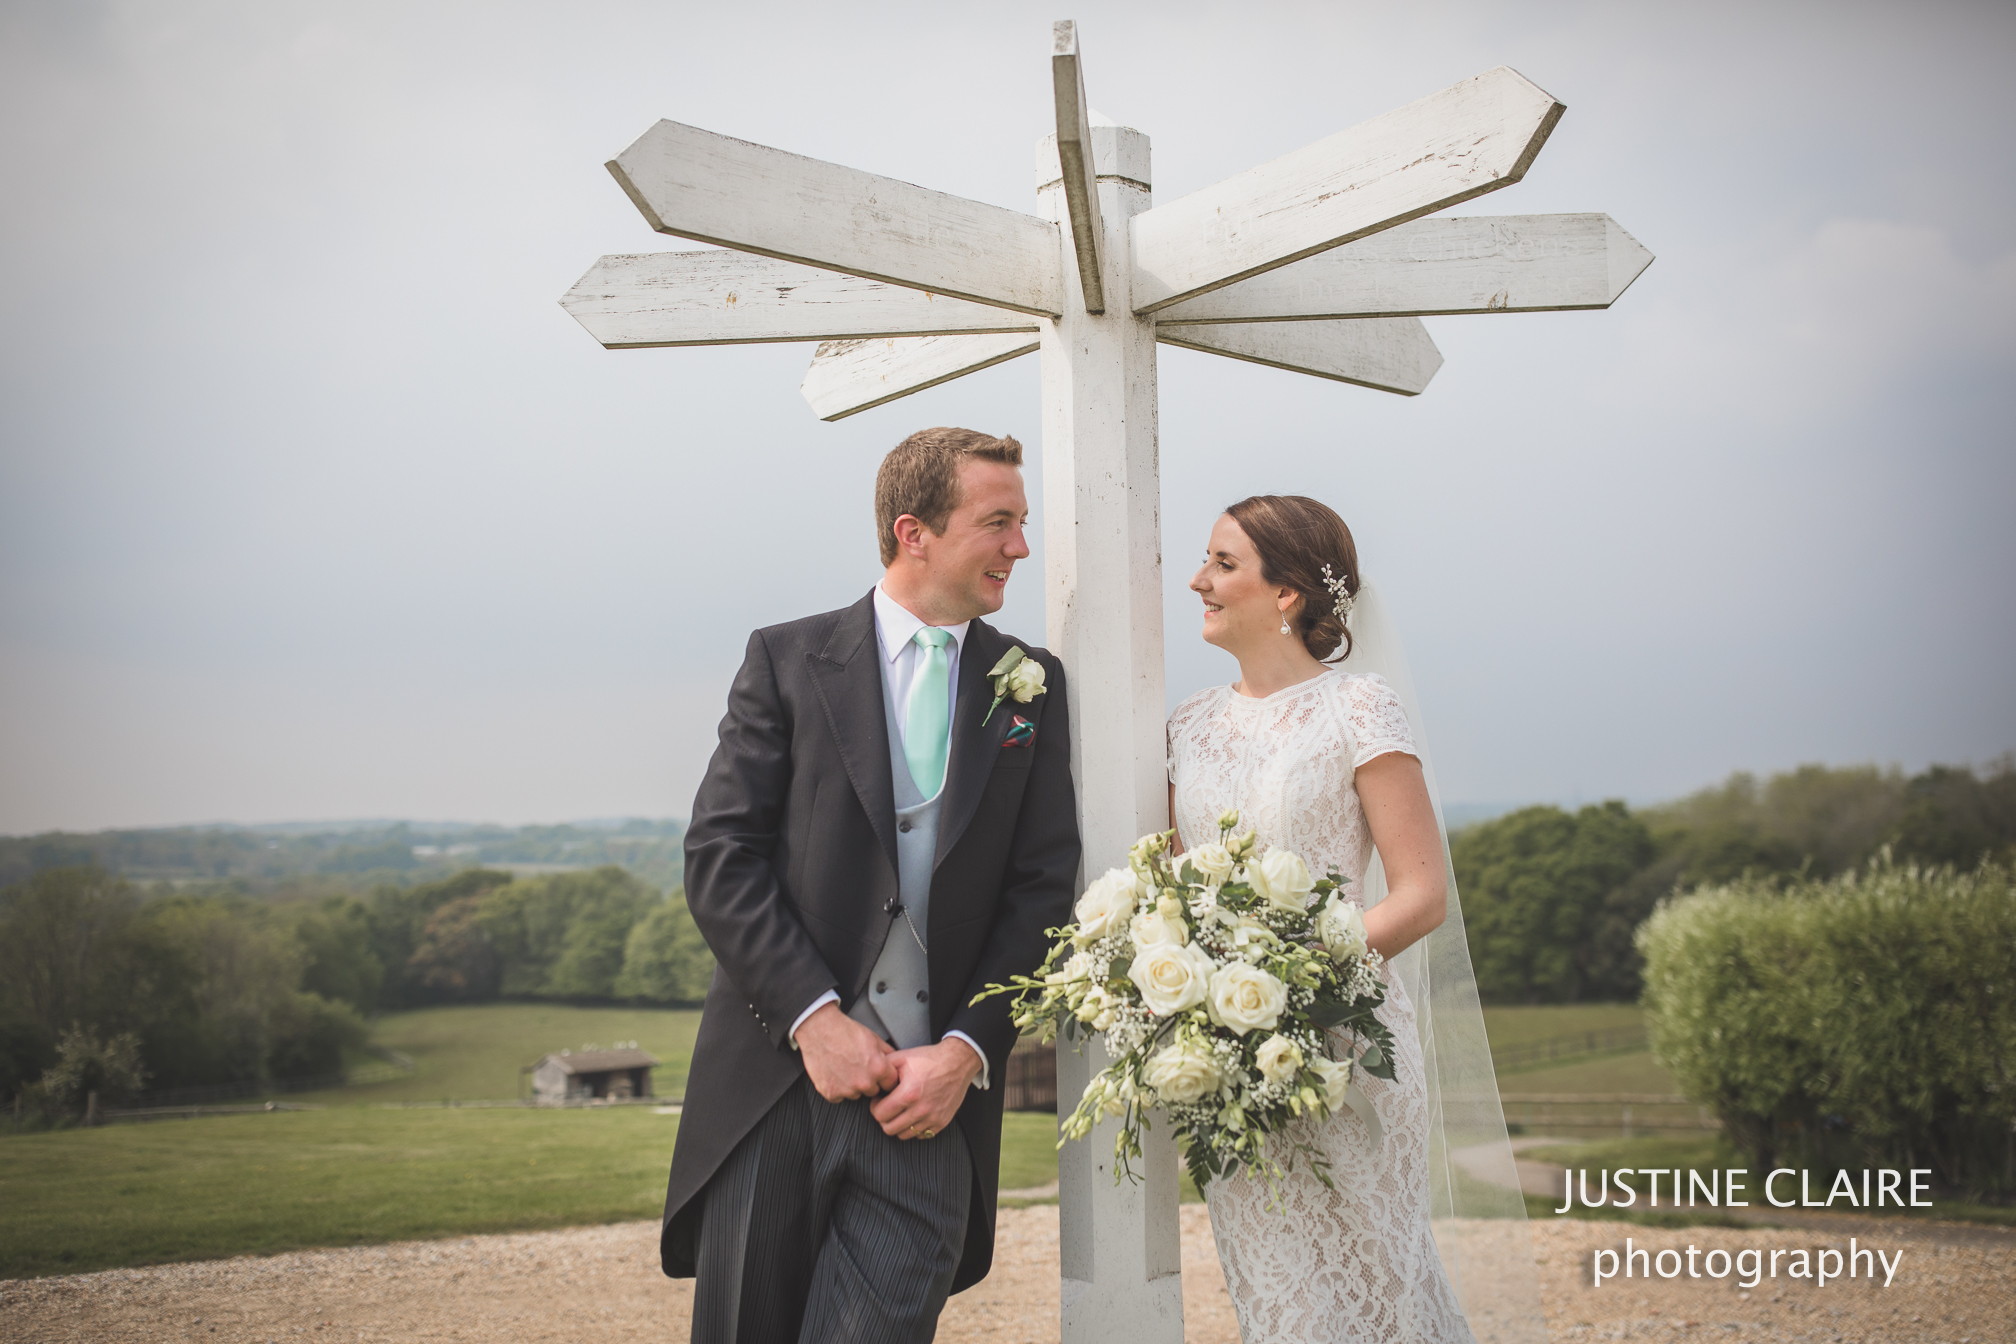 Blackstock Barn Buxted Church Uckfield wedding photographers east Sussex blackstock barn-6.jpg